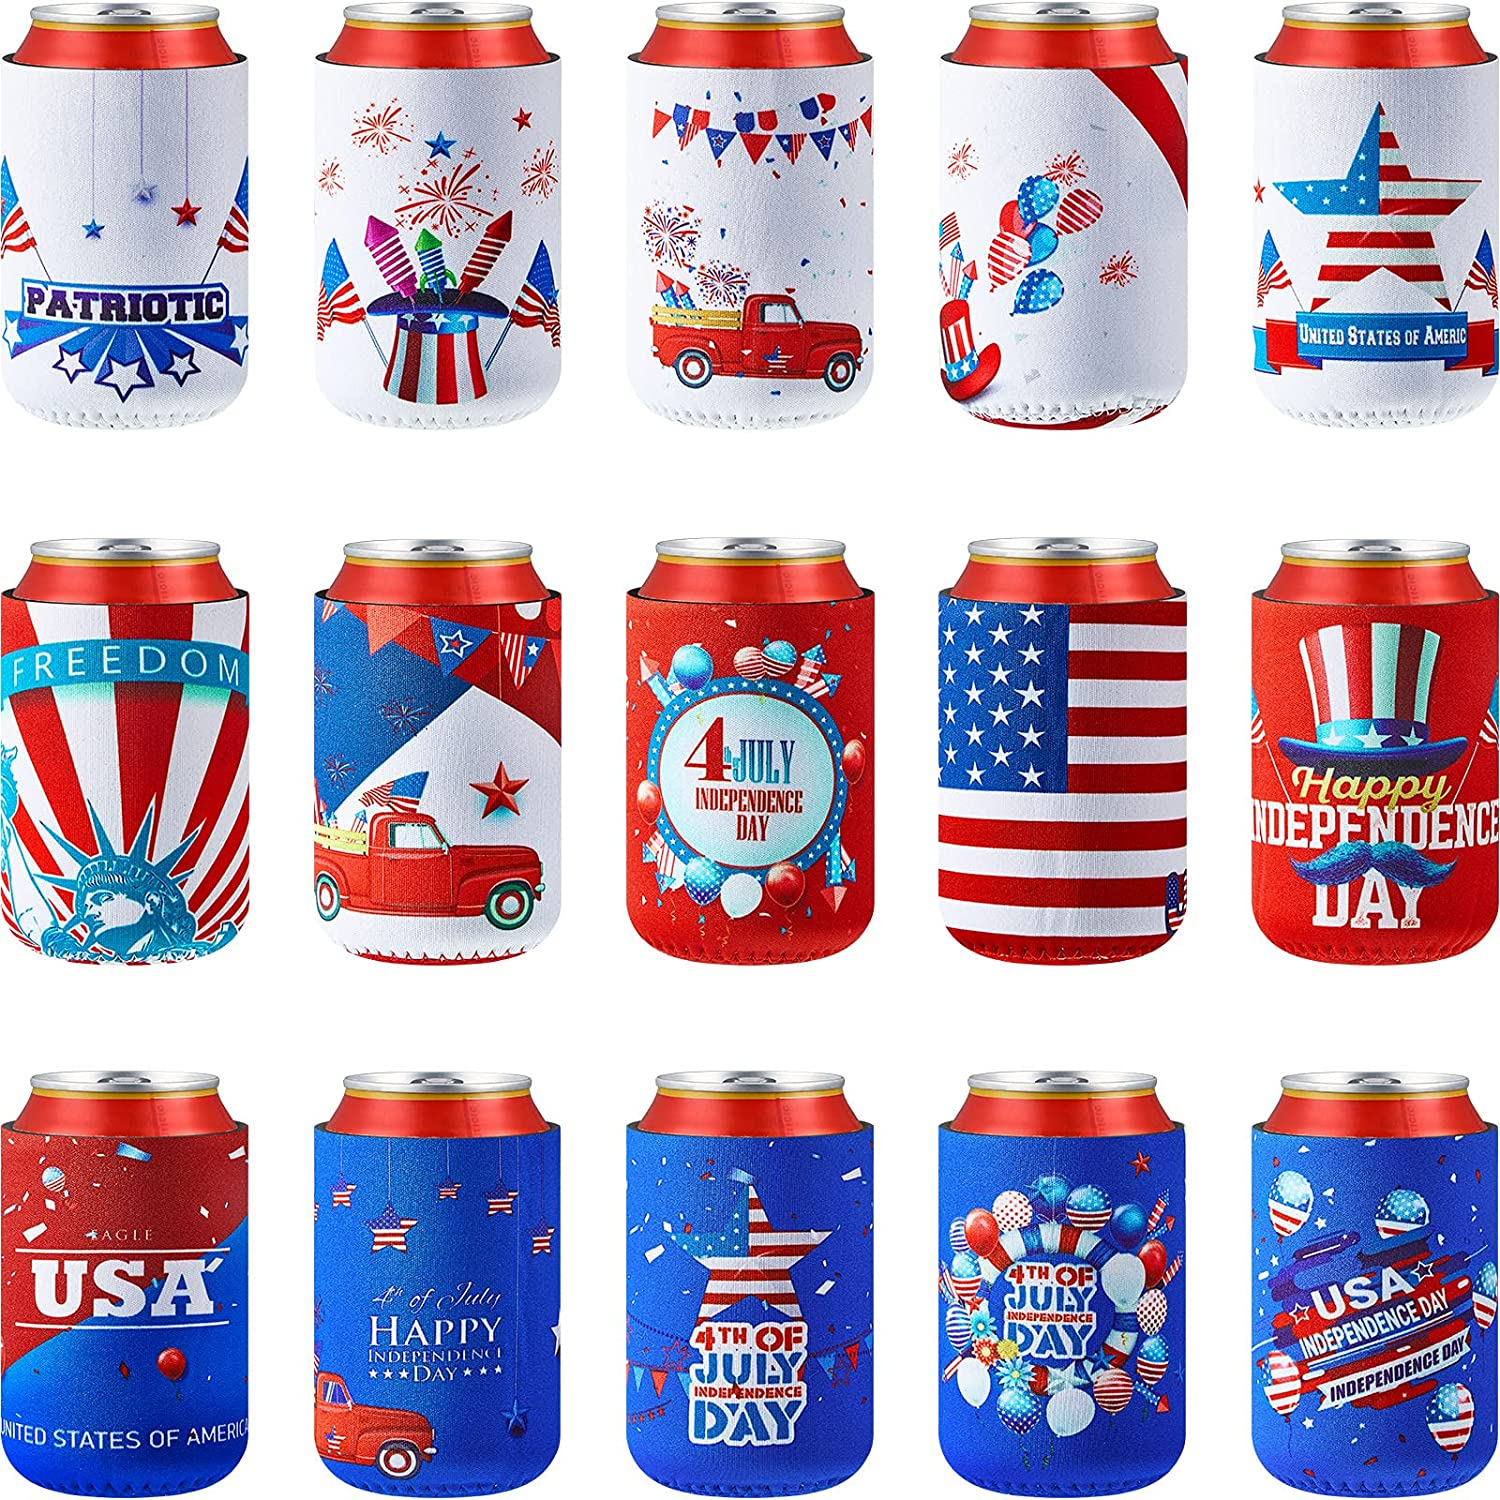 15 Pieces 4th of July of Beer Can Coolers Sleeves Patriotic American Flag Insulated Neoprene Can Covers Collapsible Drink Cooler Sleeves for 12-Ounce Canned Beverages Bottle on Independence Day